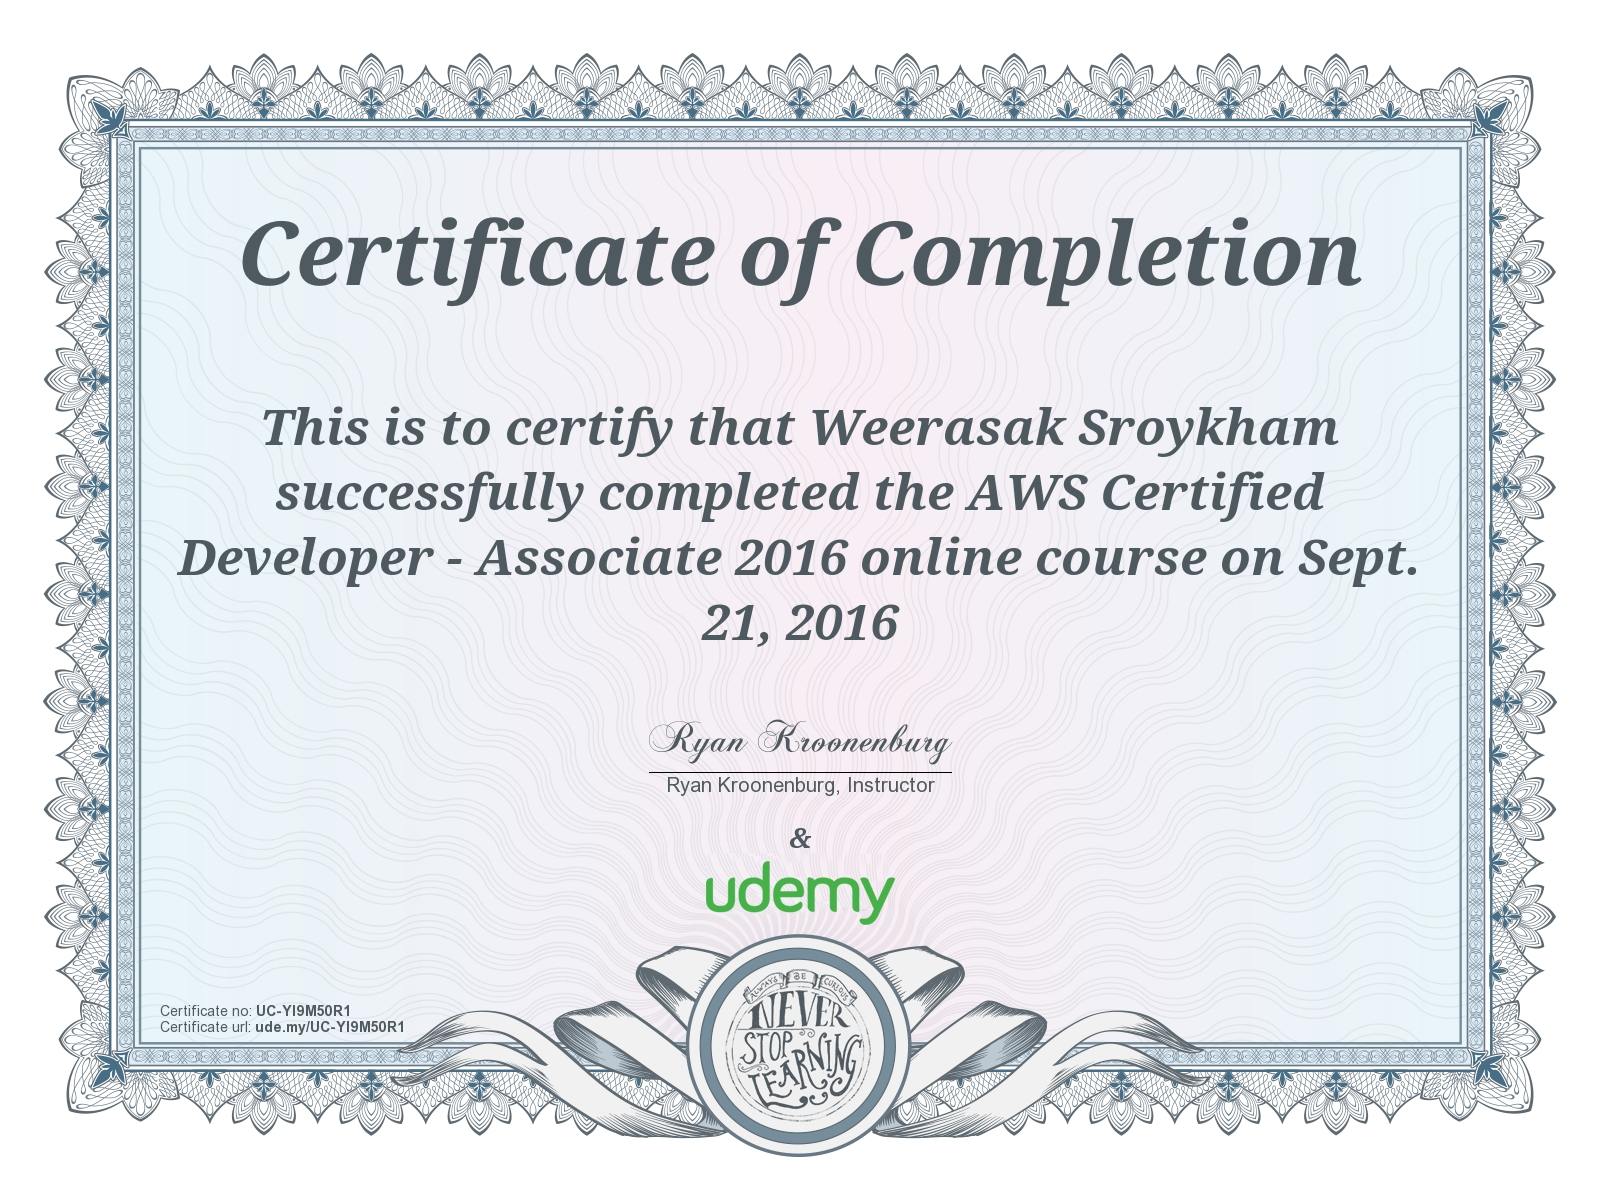 Course Aws Certified Developer Associate 2016 On Sept 21 2016 As